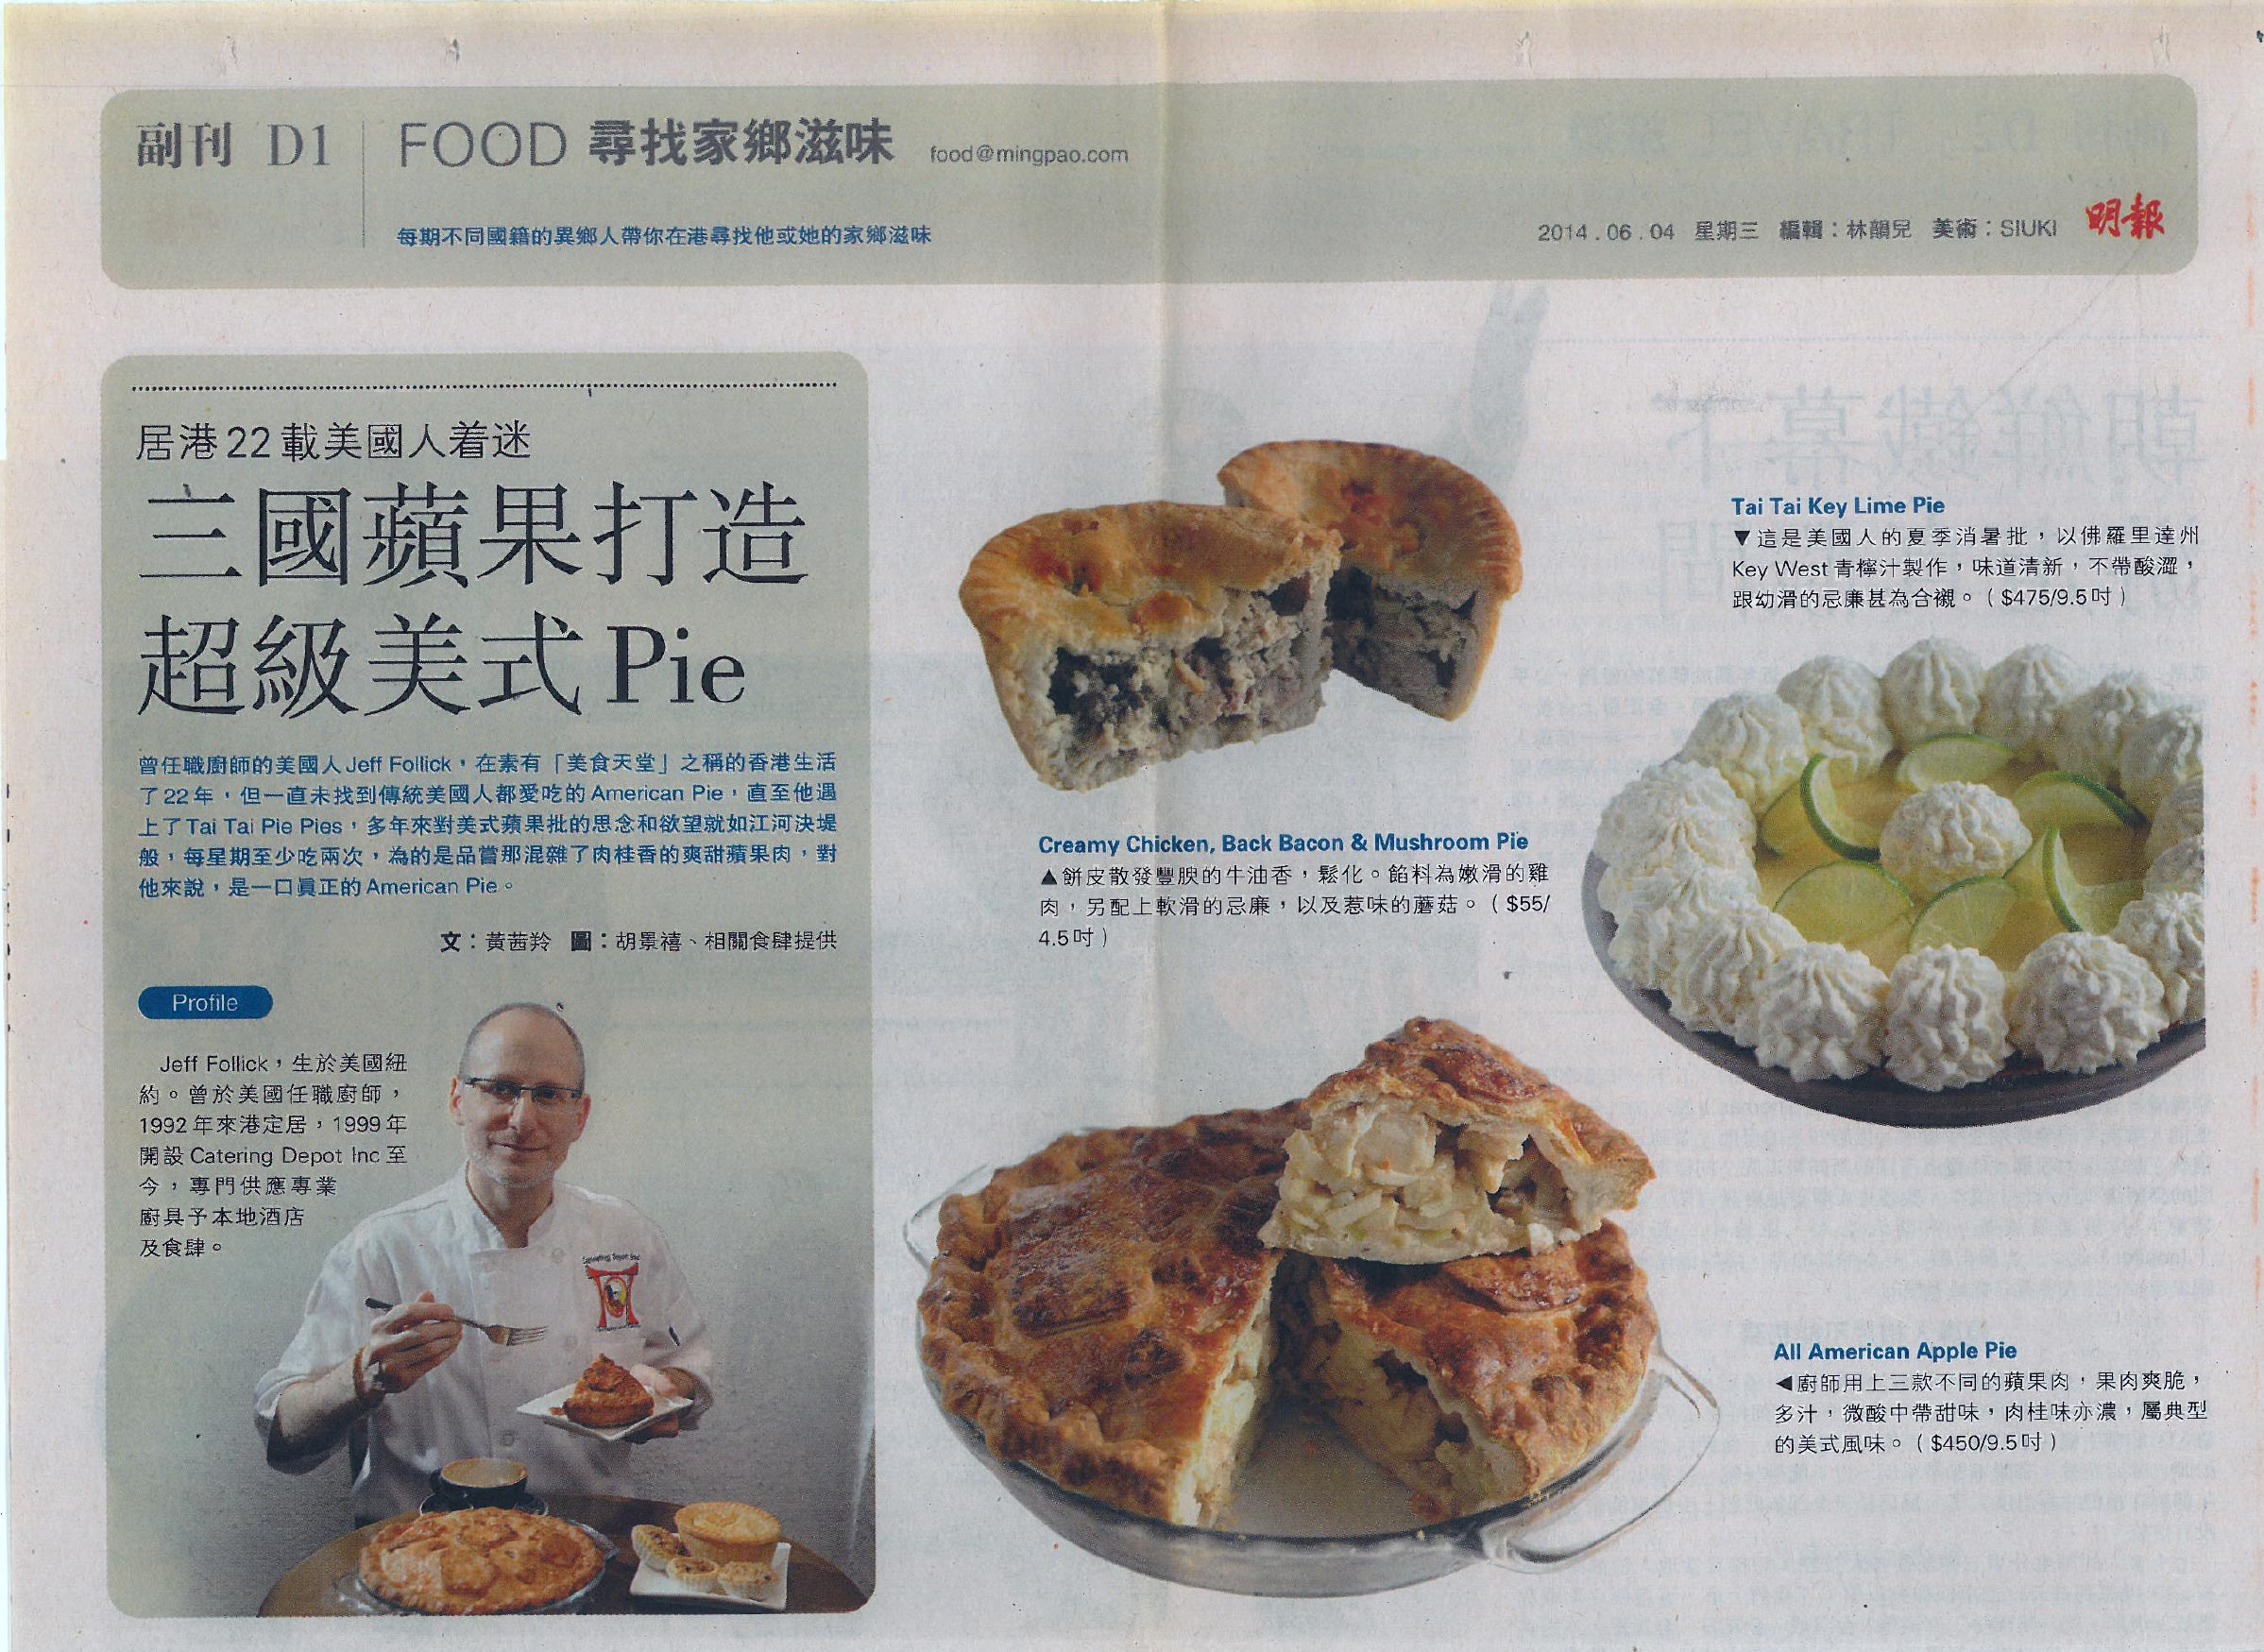 Click to enlarge image ming_pao_food-1.jpg